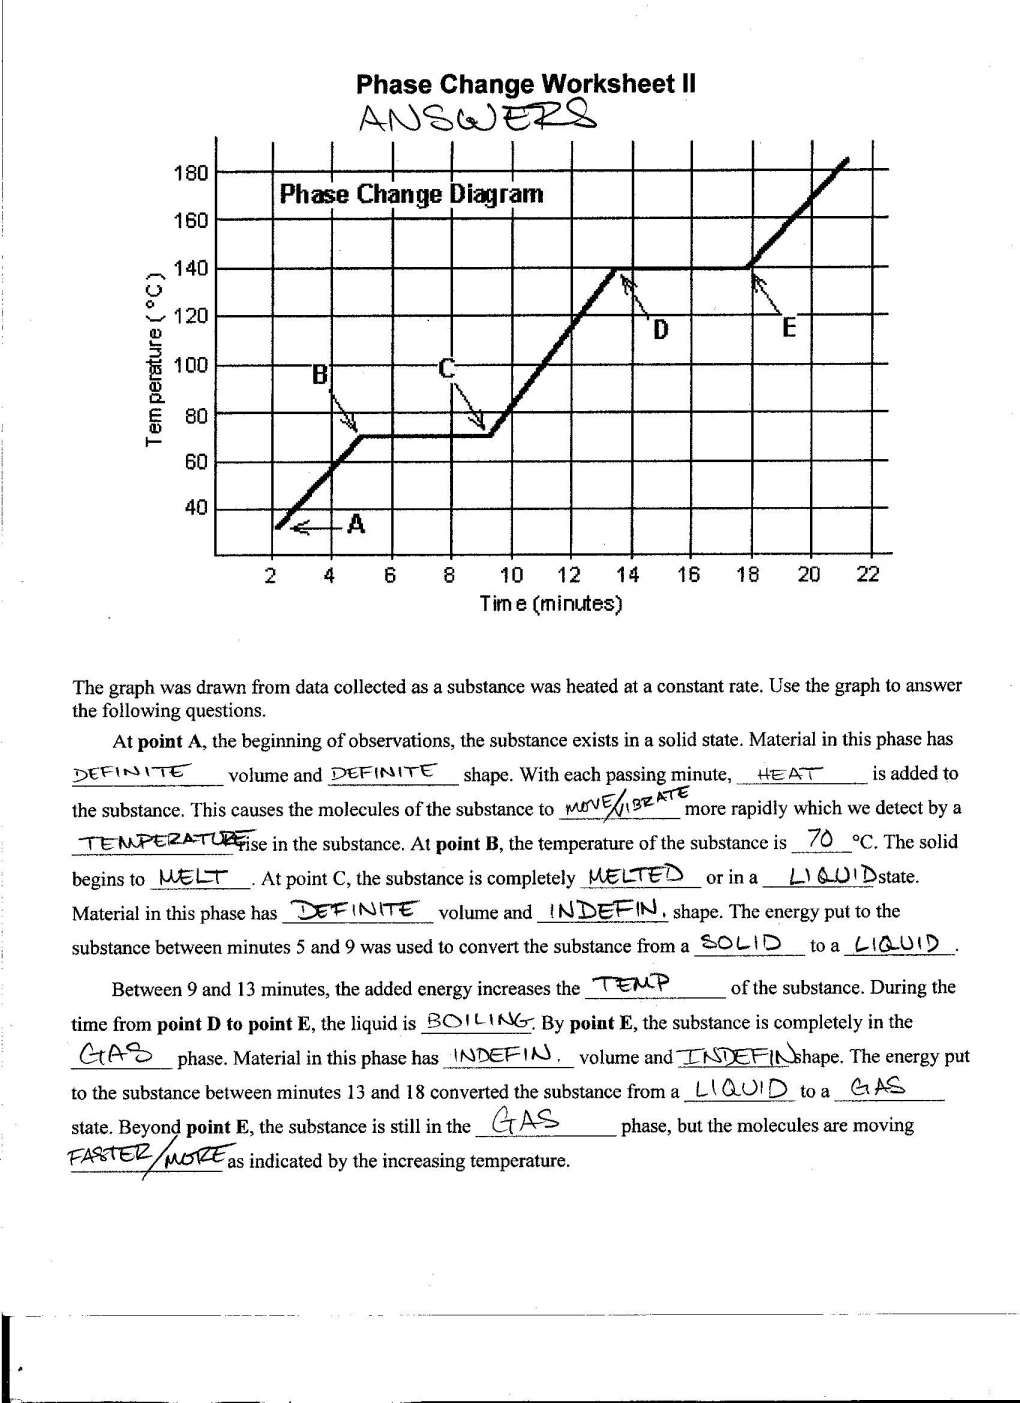 11 Phase Change Worksheet Answers With Work Worksheets Author S Purpose Worksheet Diagram